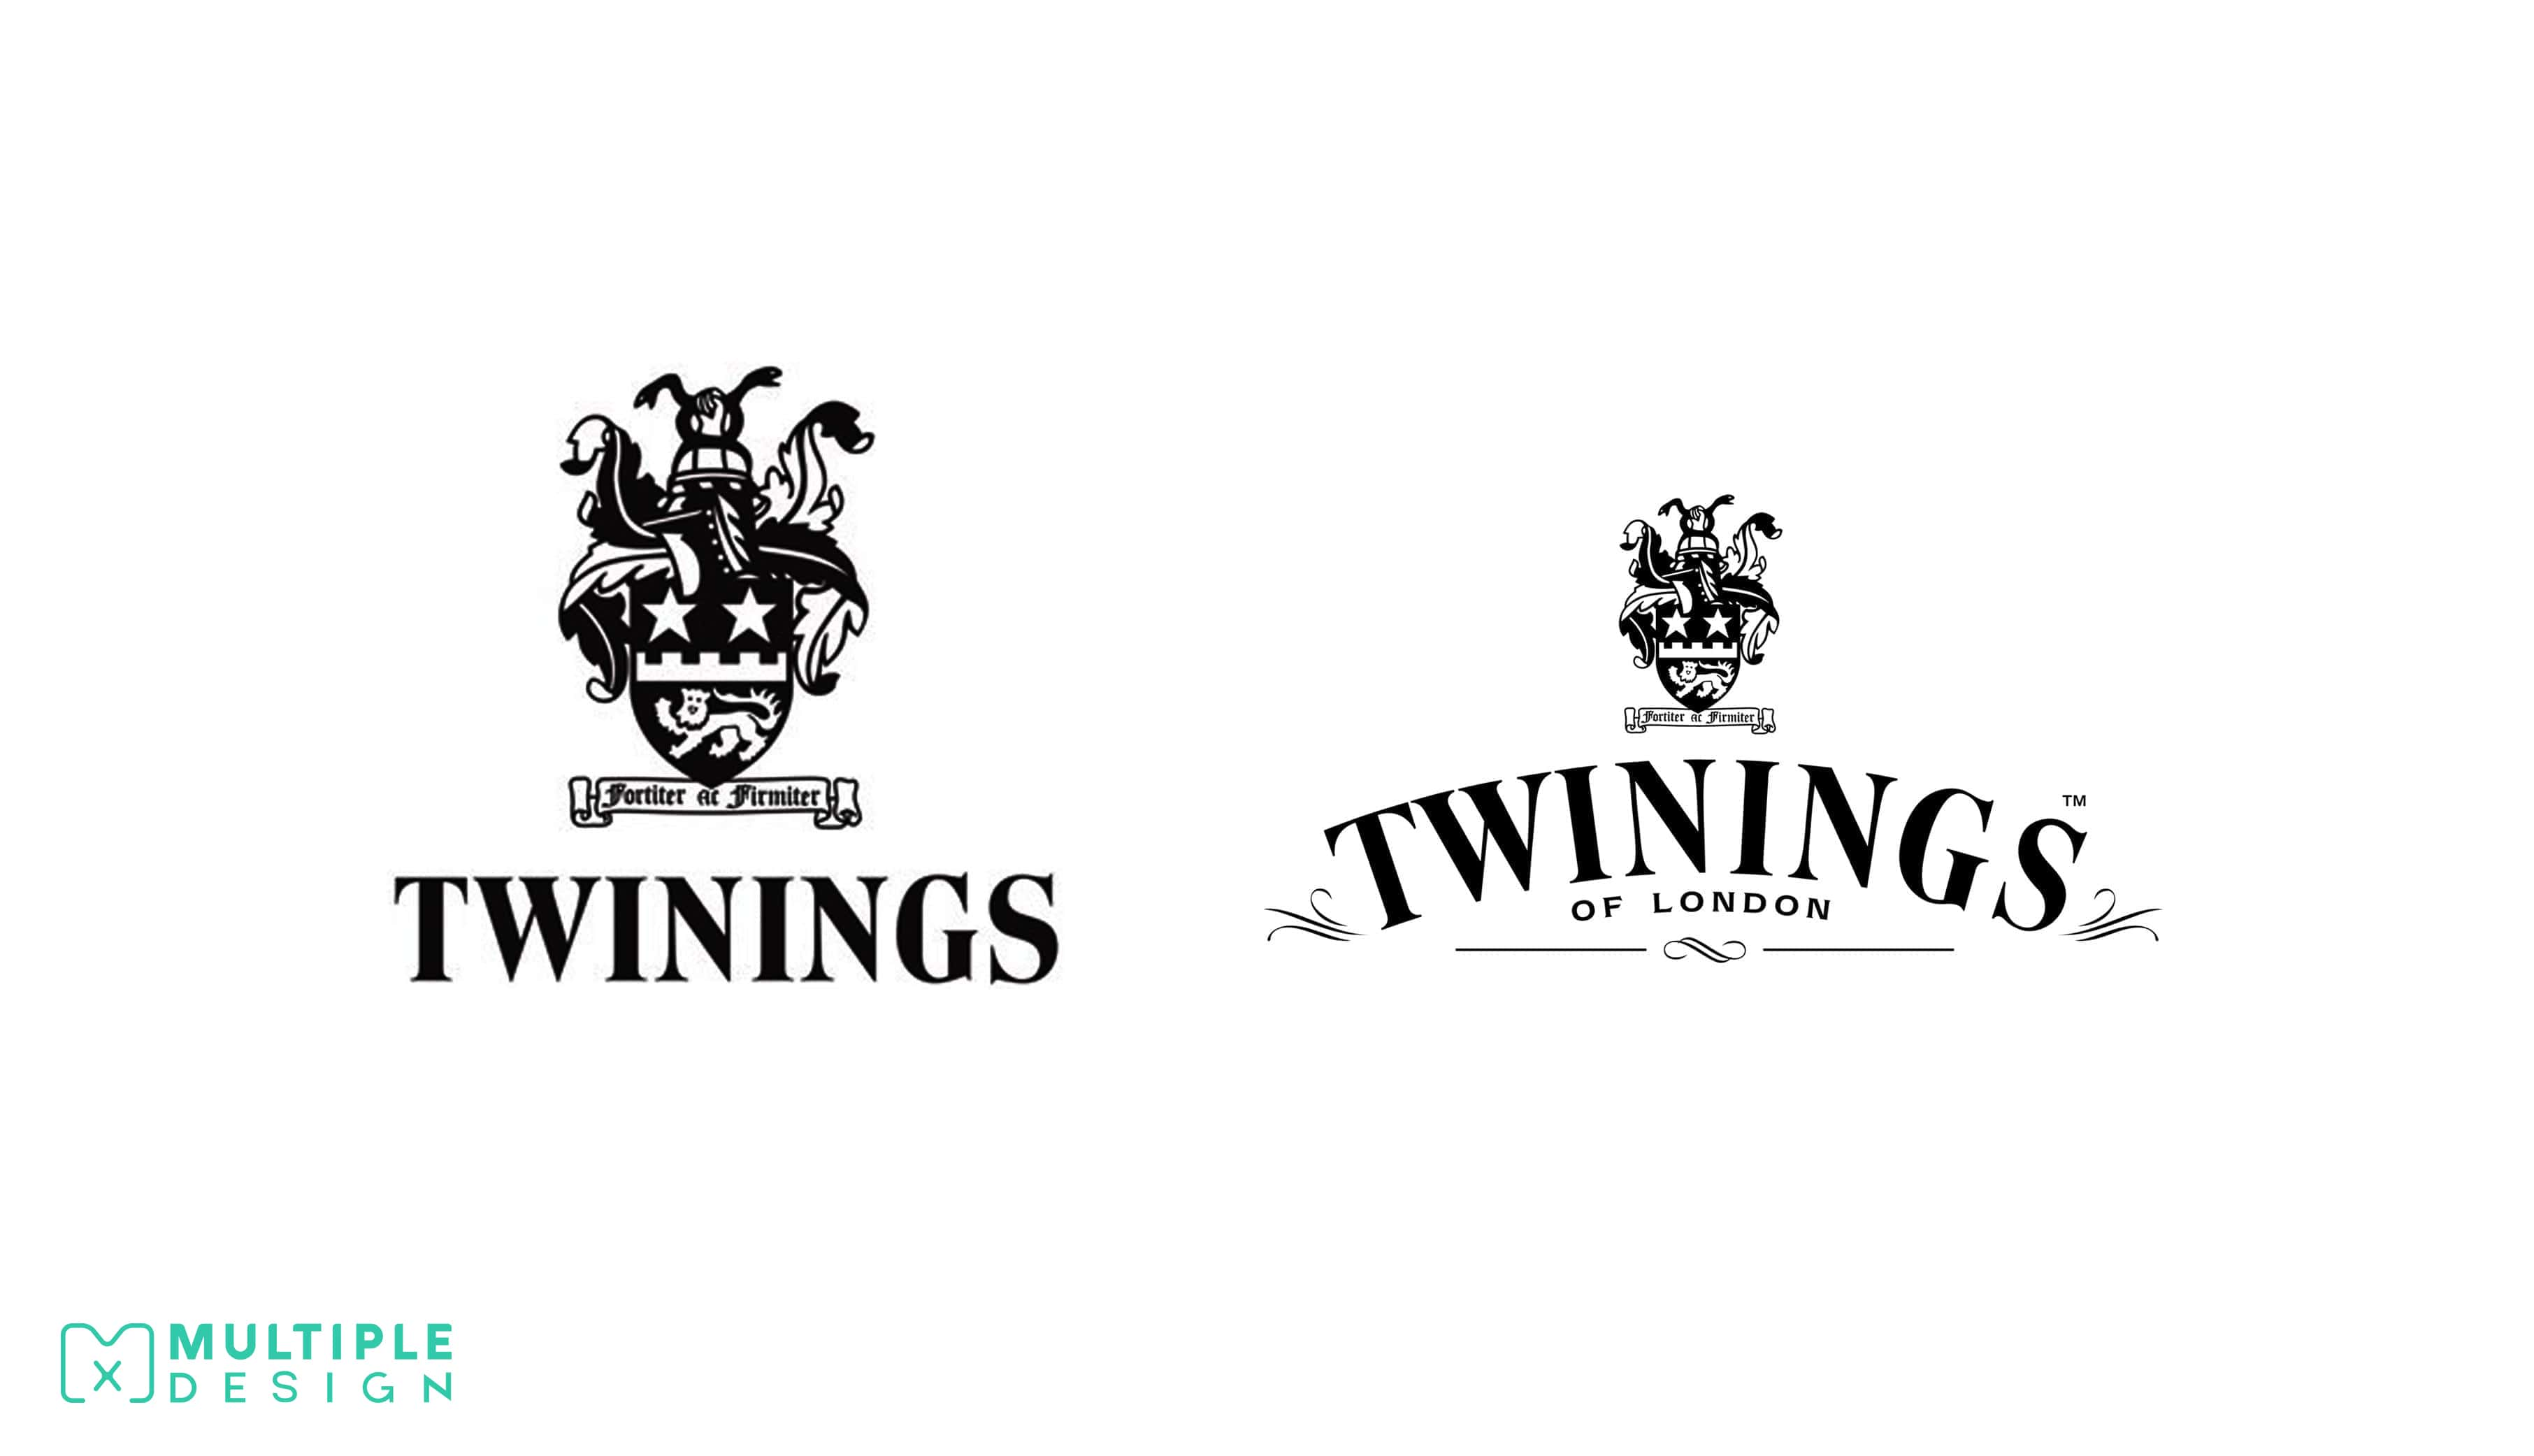 twinnings oldest logo